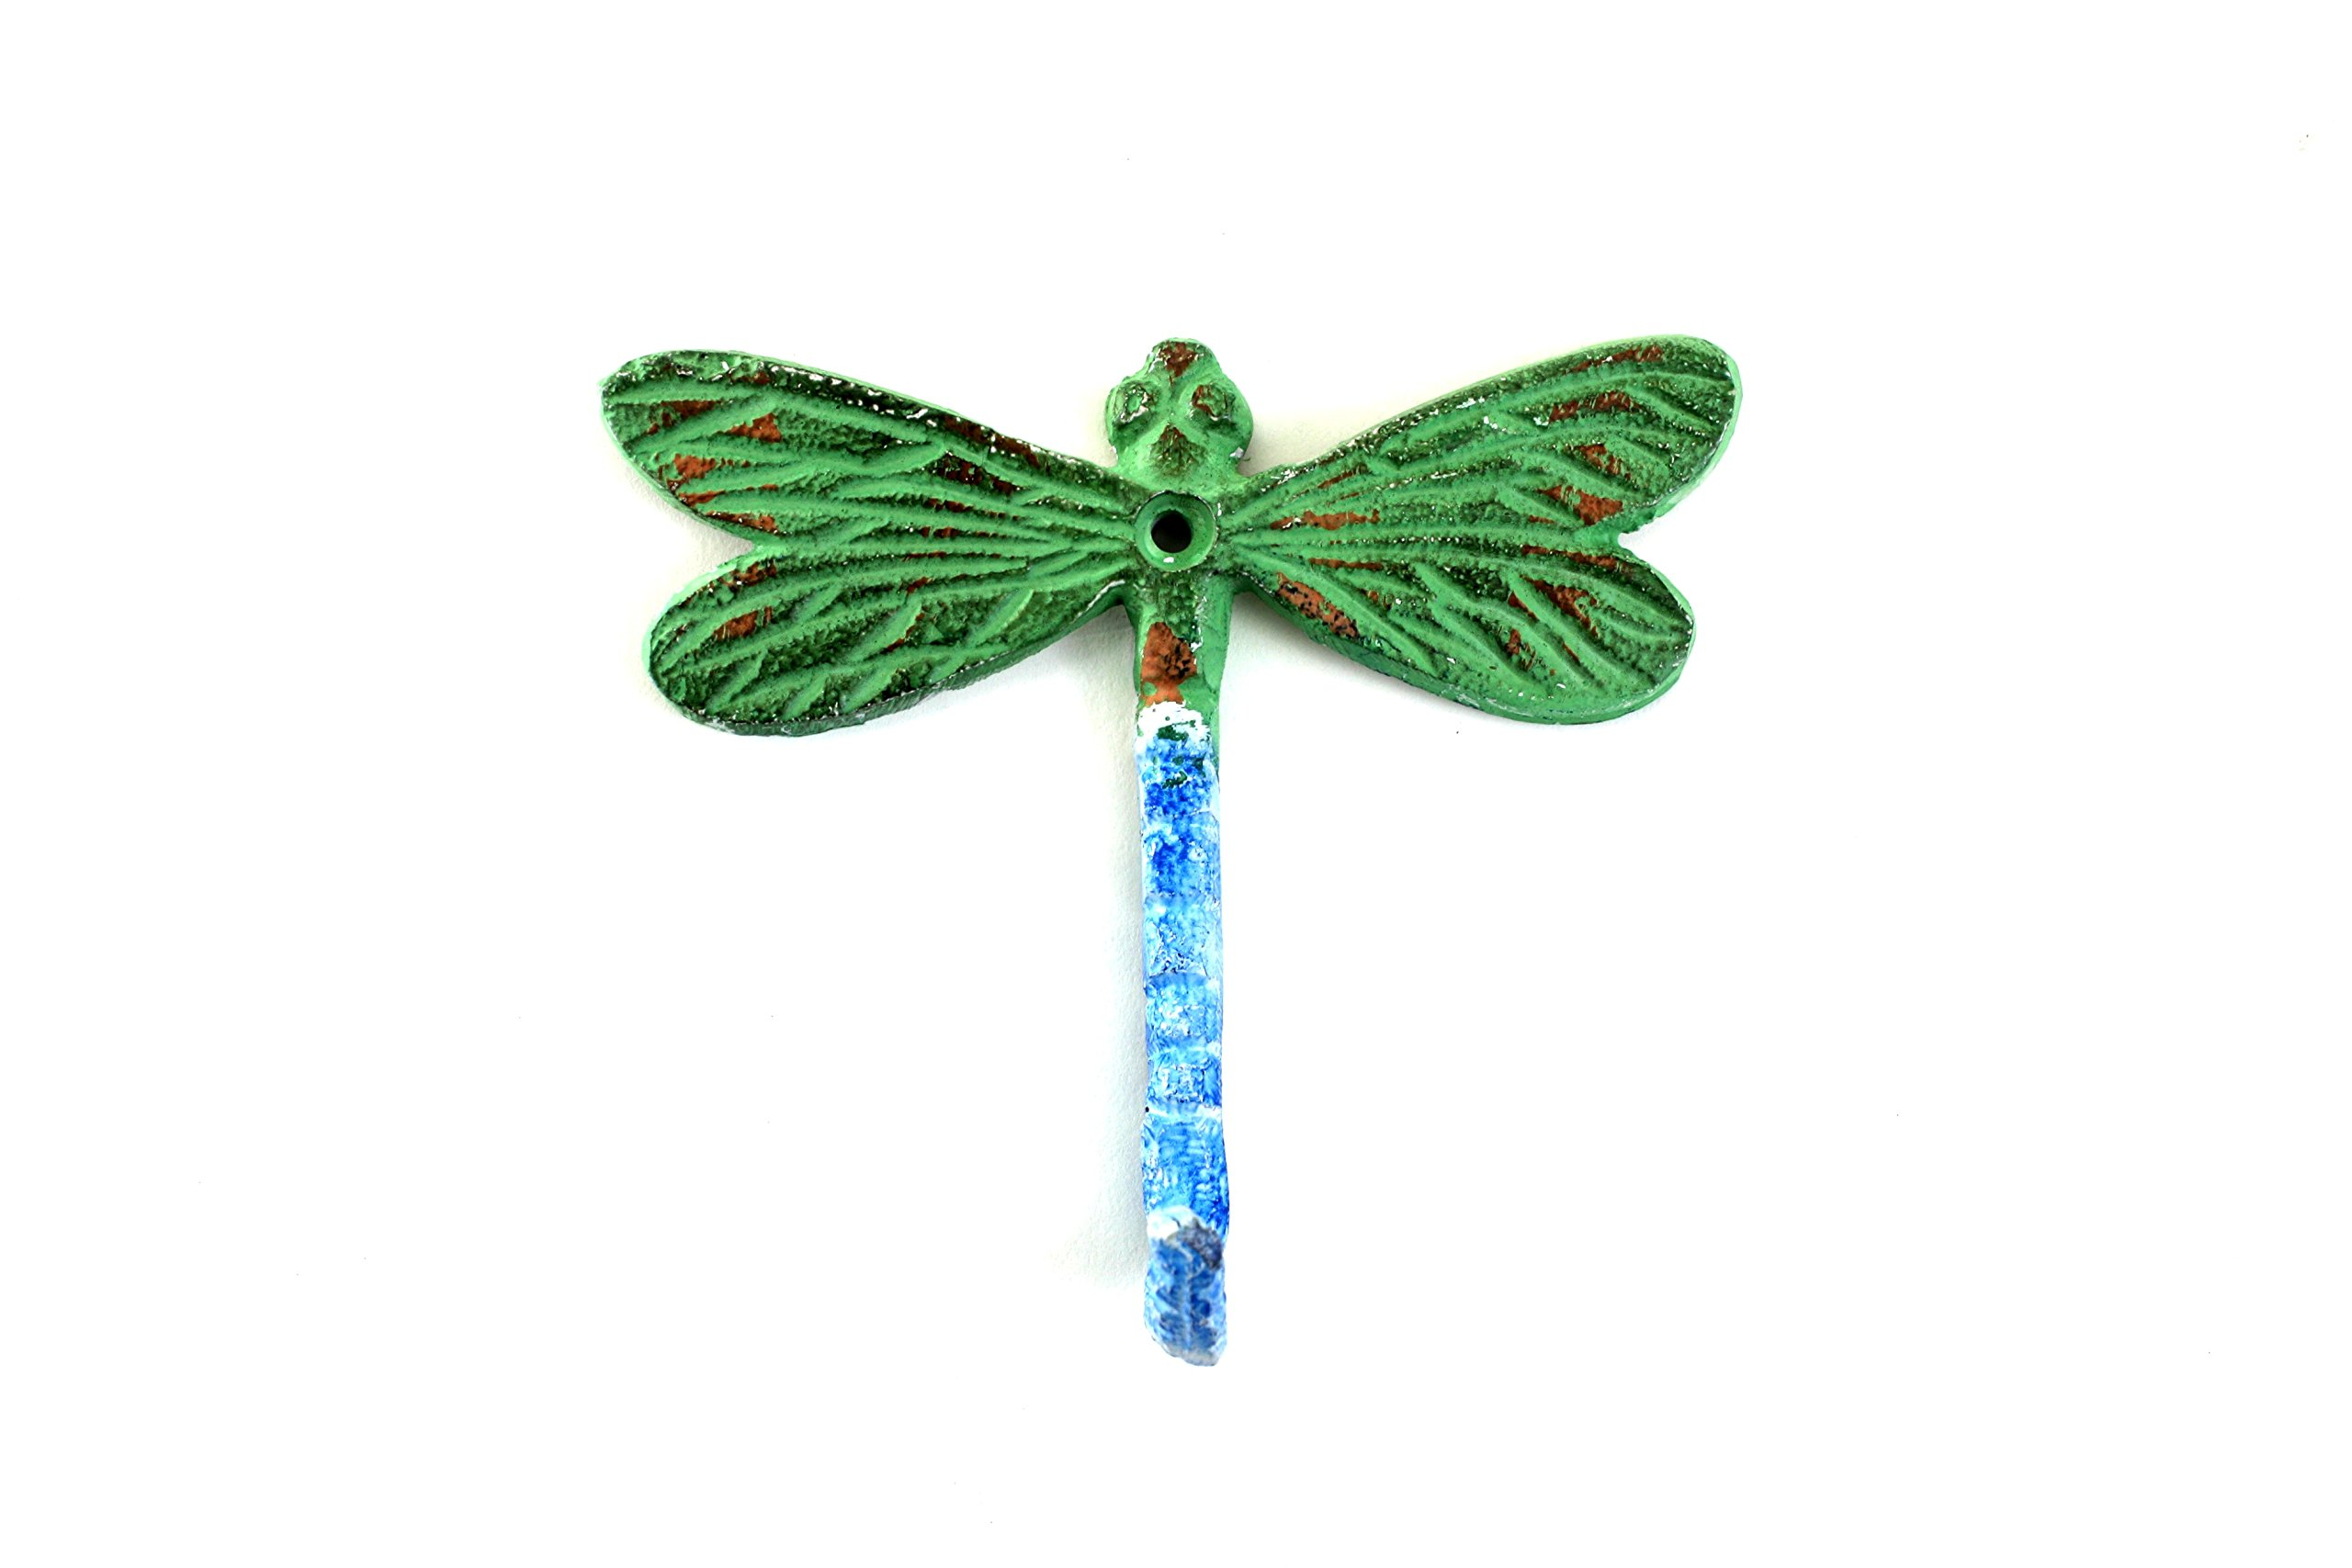 Dragon Fly Hook in Blue Green Distressed Finish (Set of 3)